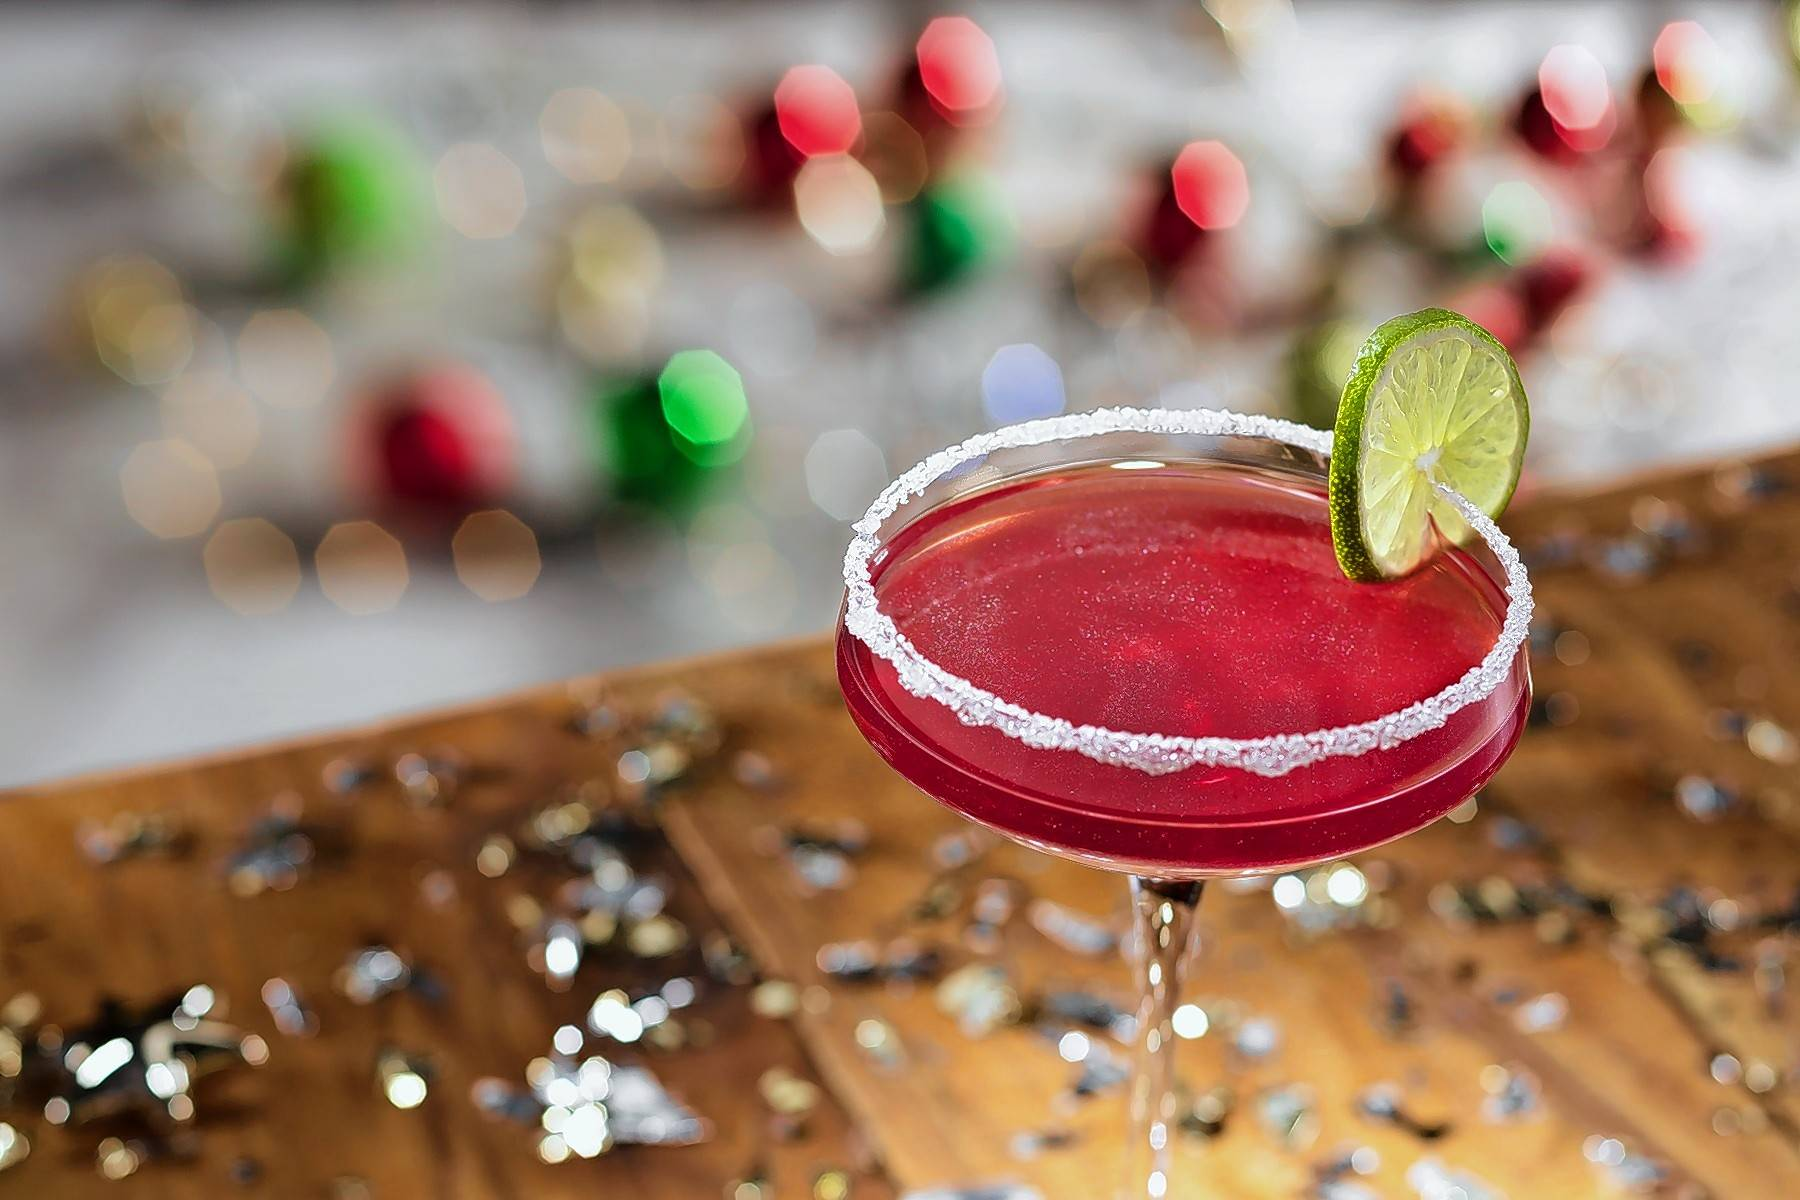 Olive Garden's Merry Cranberry is a blend of Deep Eddy Cranberry Vodka and amaretto shaken with cranberry-pomegranate juice and finished with glitter dust and a sugar rim.